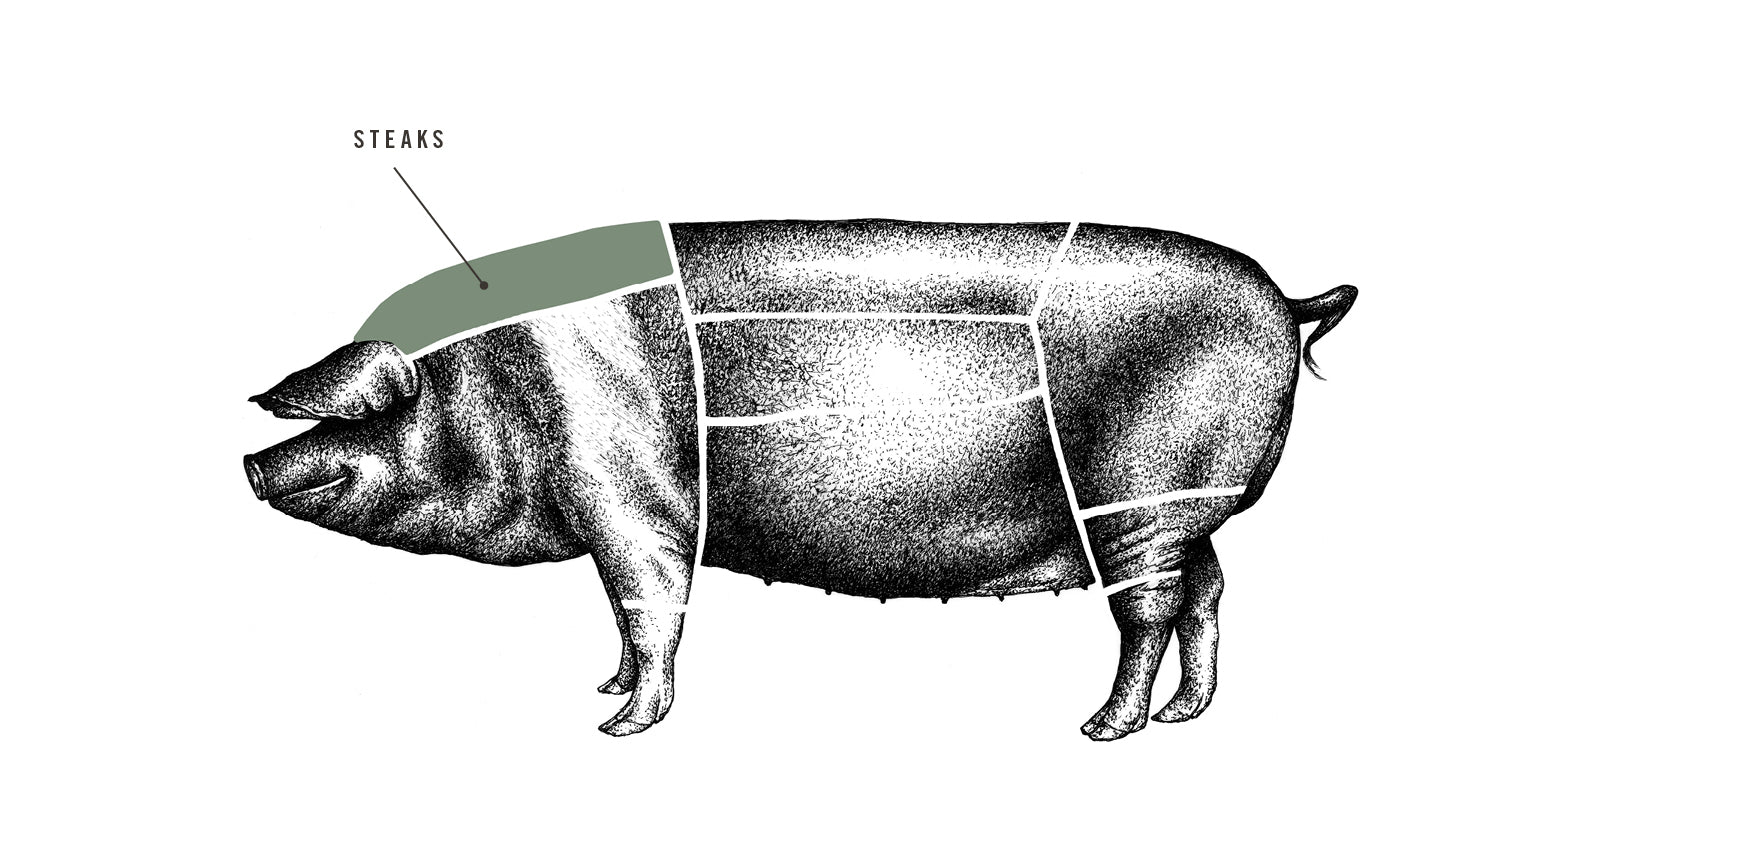 Saddleback Pork Steaks meat cuts diagram